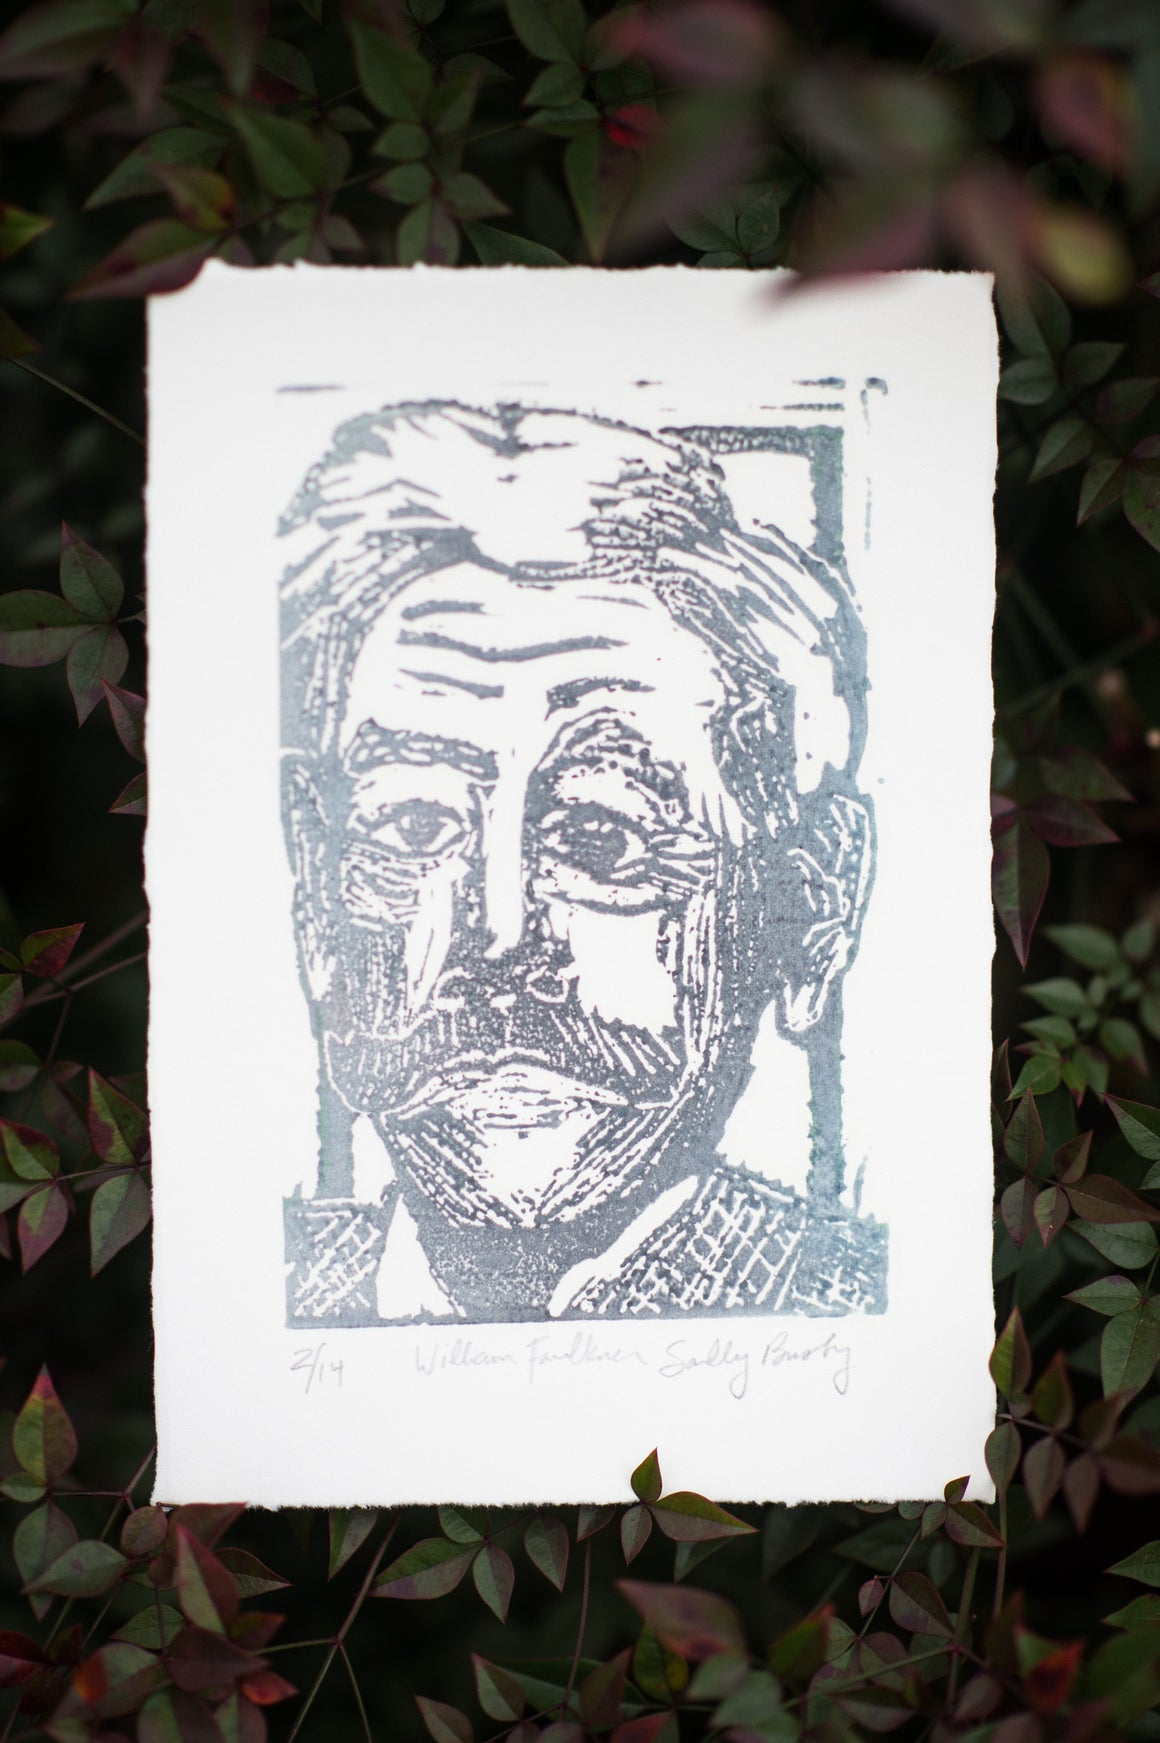 William Faulkner Linocut Print